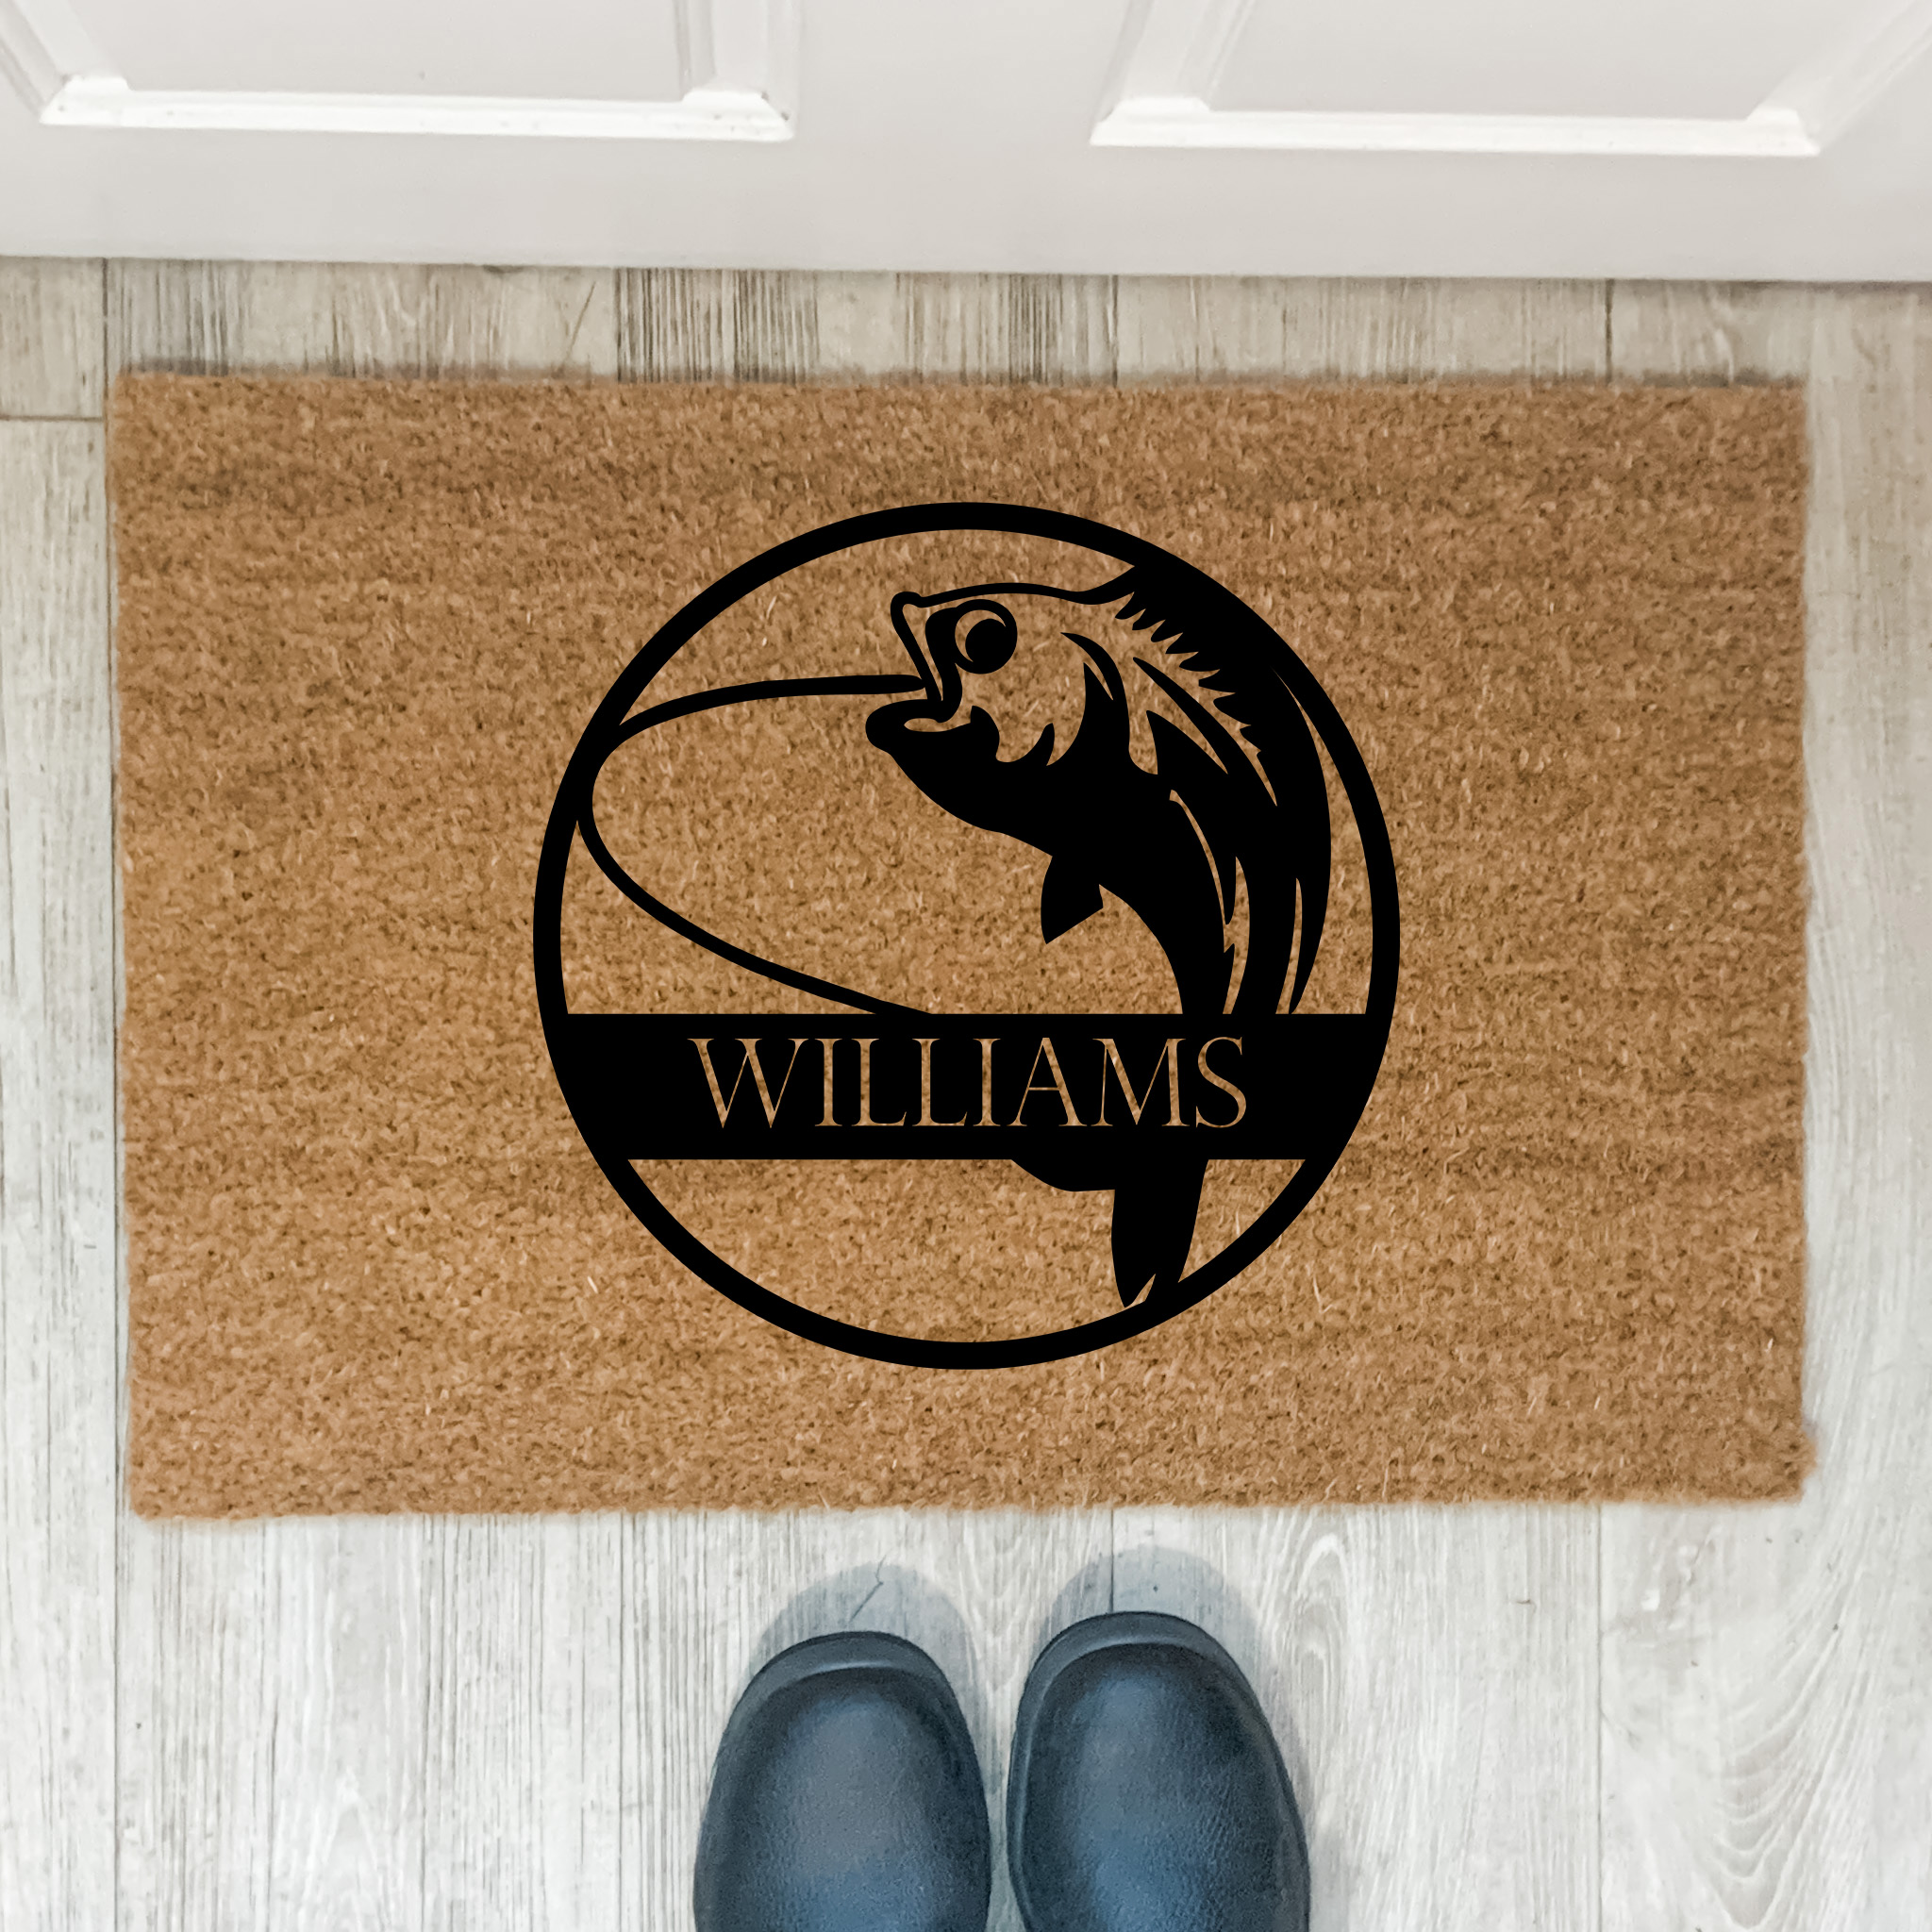 personalised door mat, fishing mat